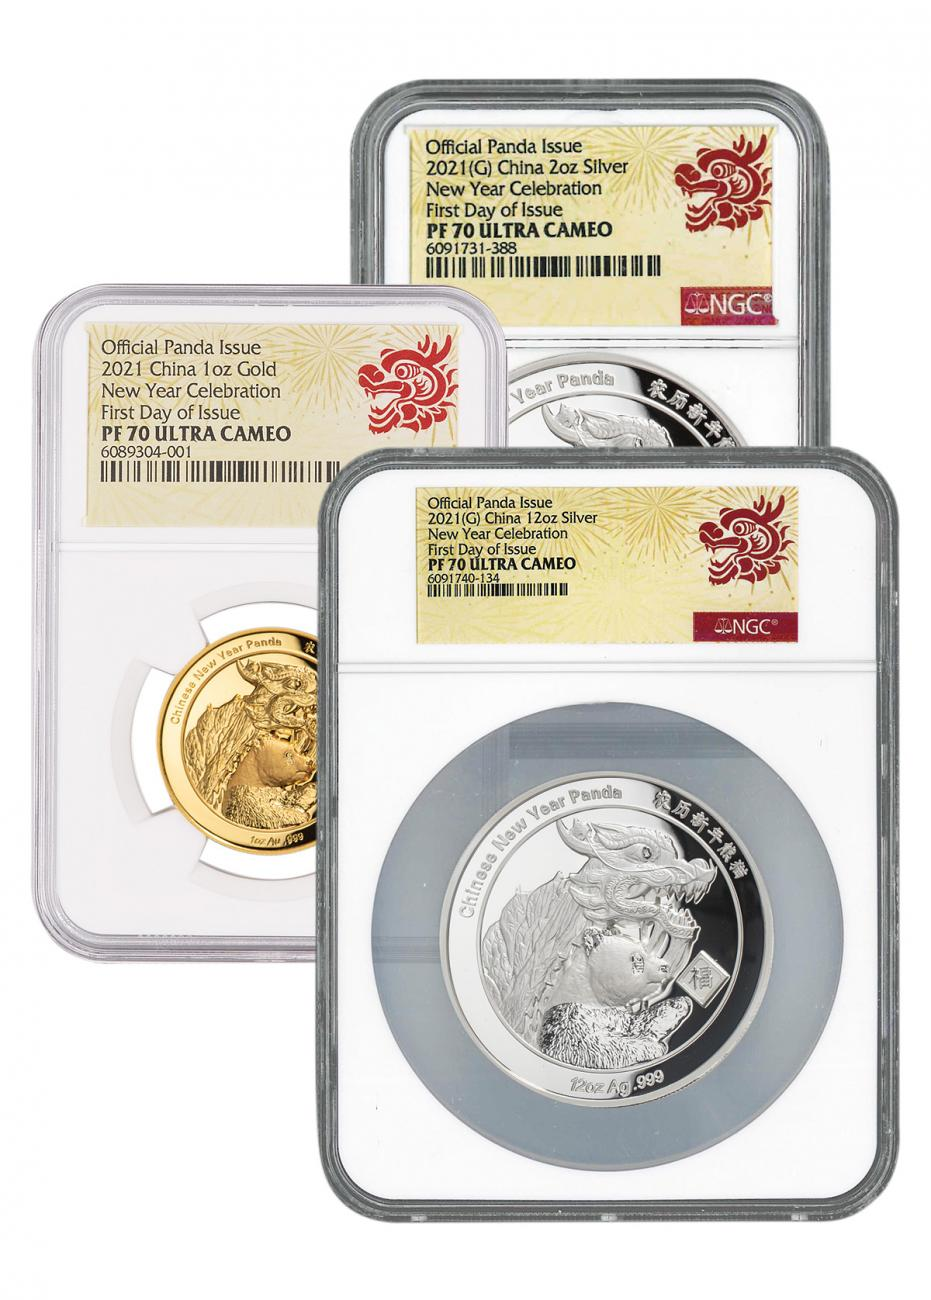 3-Piece Set - 2021 China New Year Celebration Panda Ultra High Relief 1 oz Gold + 12/2 oz Silver Proof Medal Scarce and Unique Coin Division NGC PF70 UC FDI